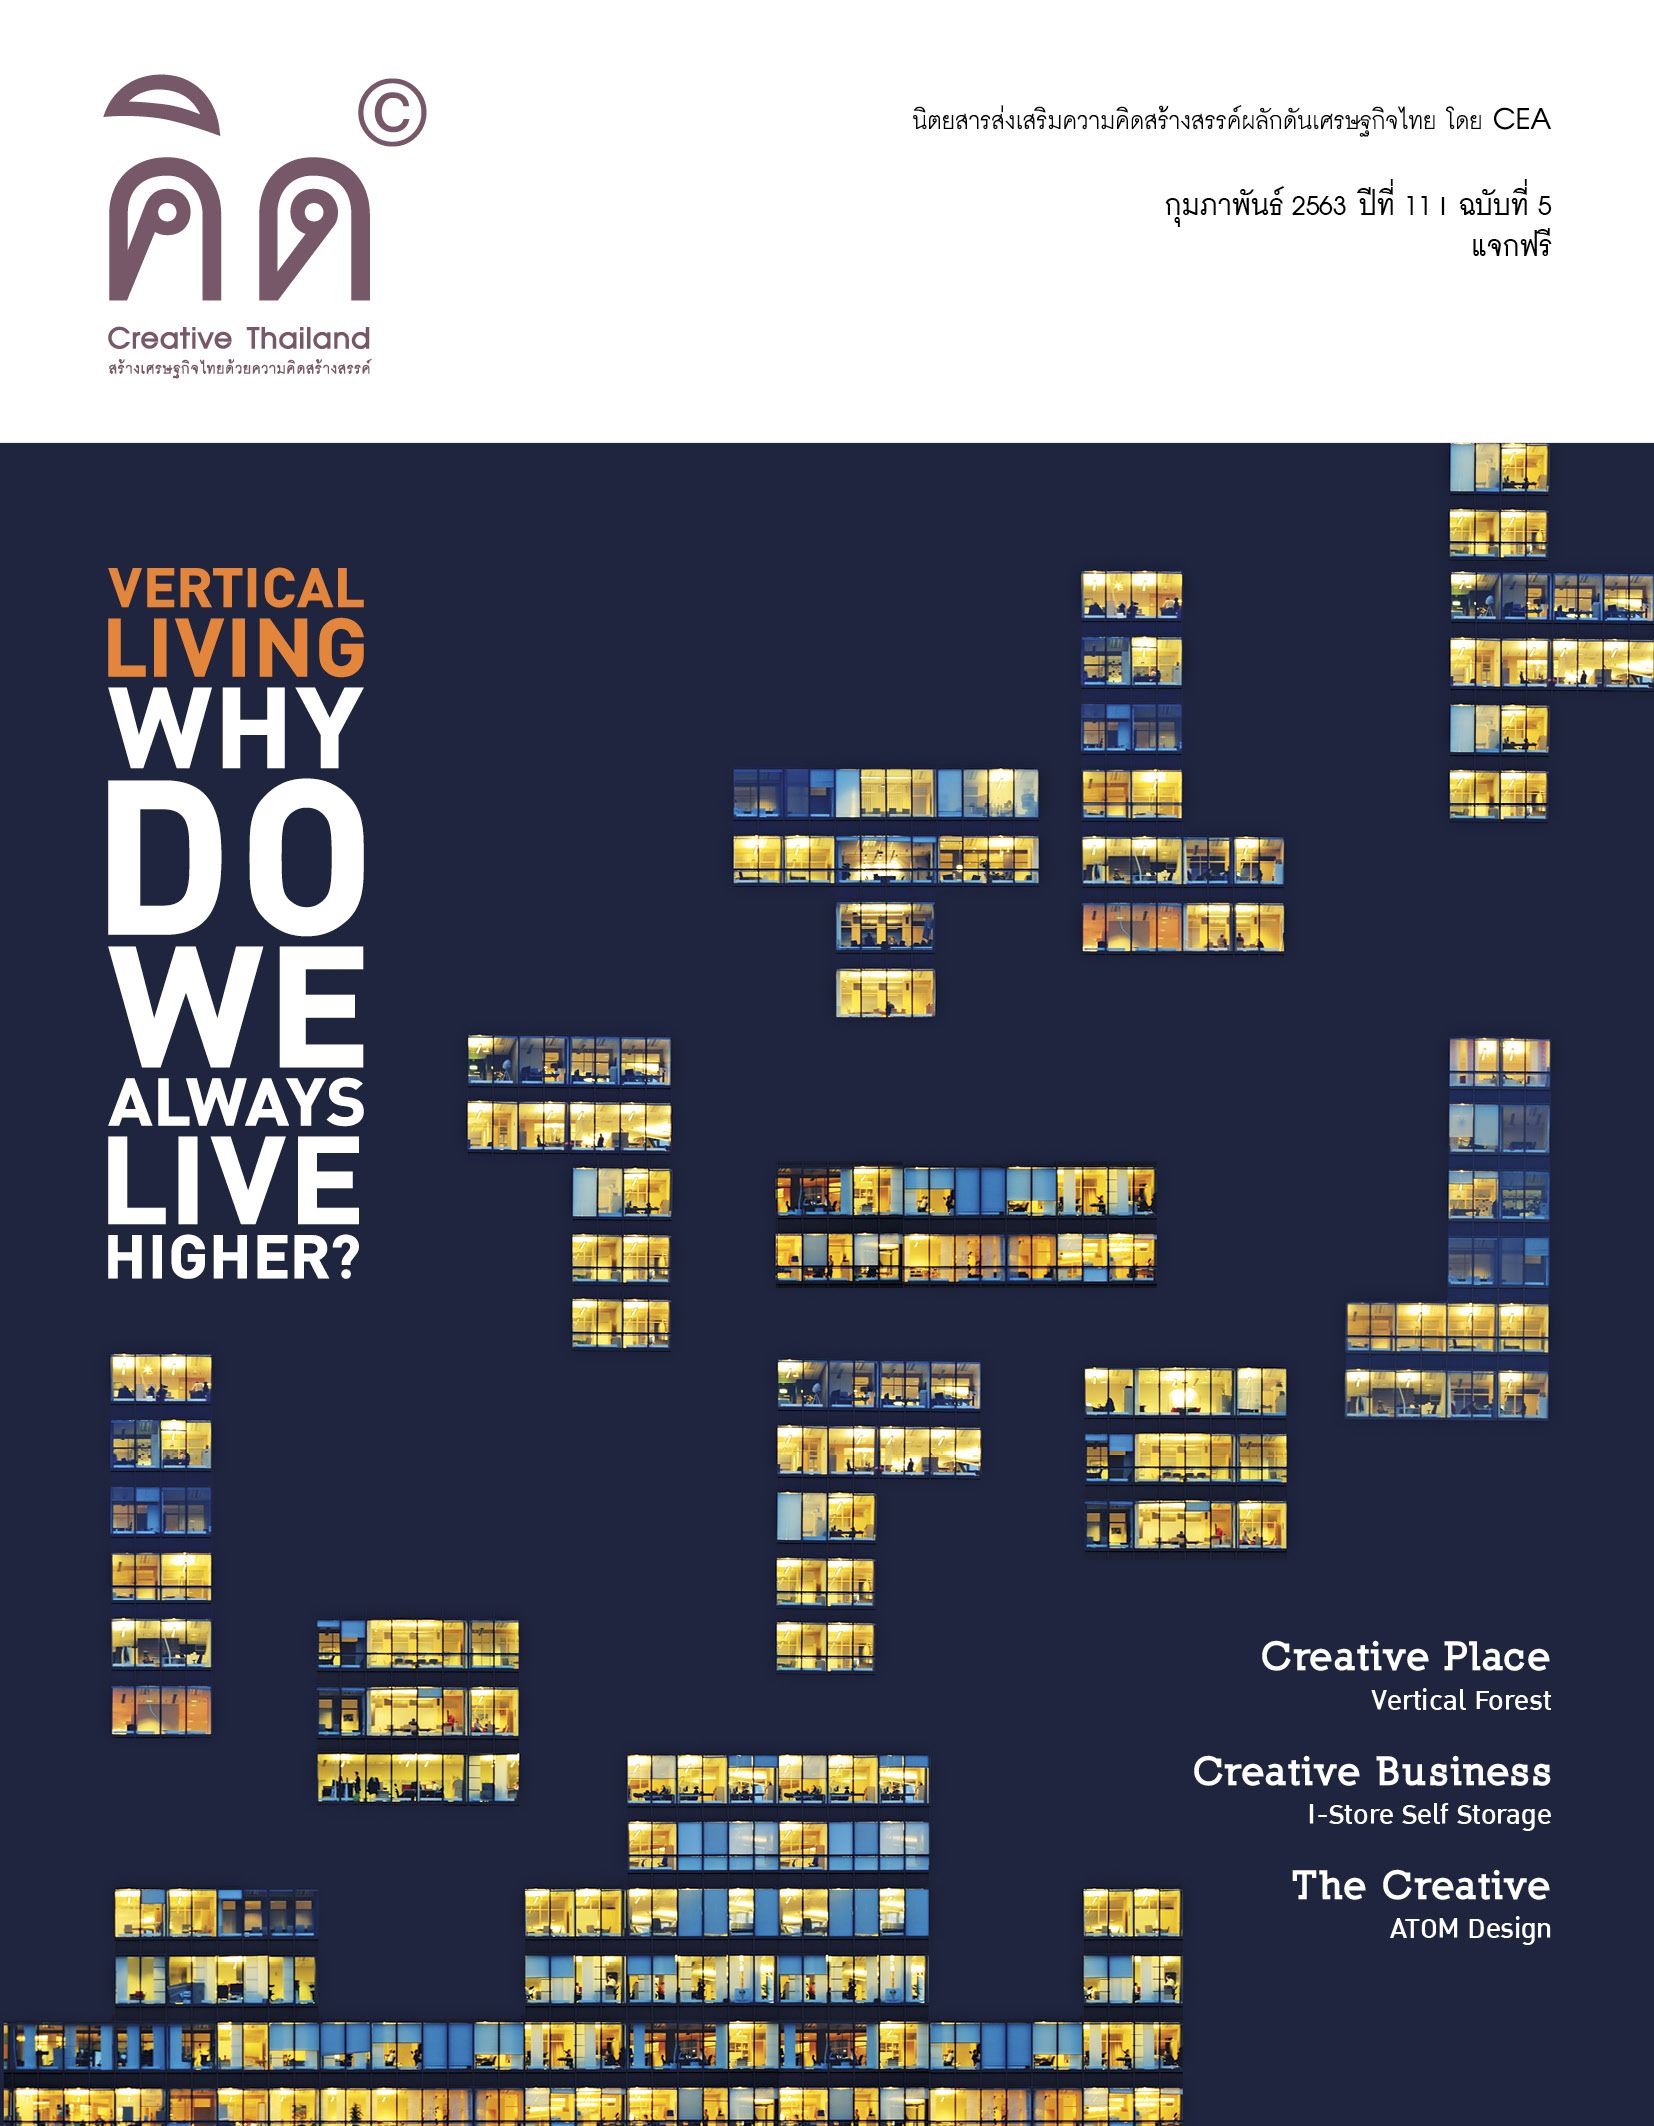 VERTICAL LIVING: WHY DO WE ALWAYS LIVE HIGHER?